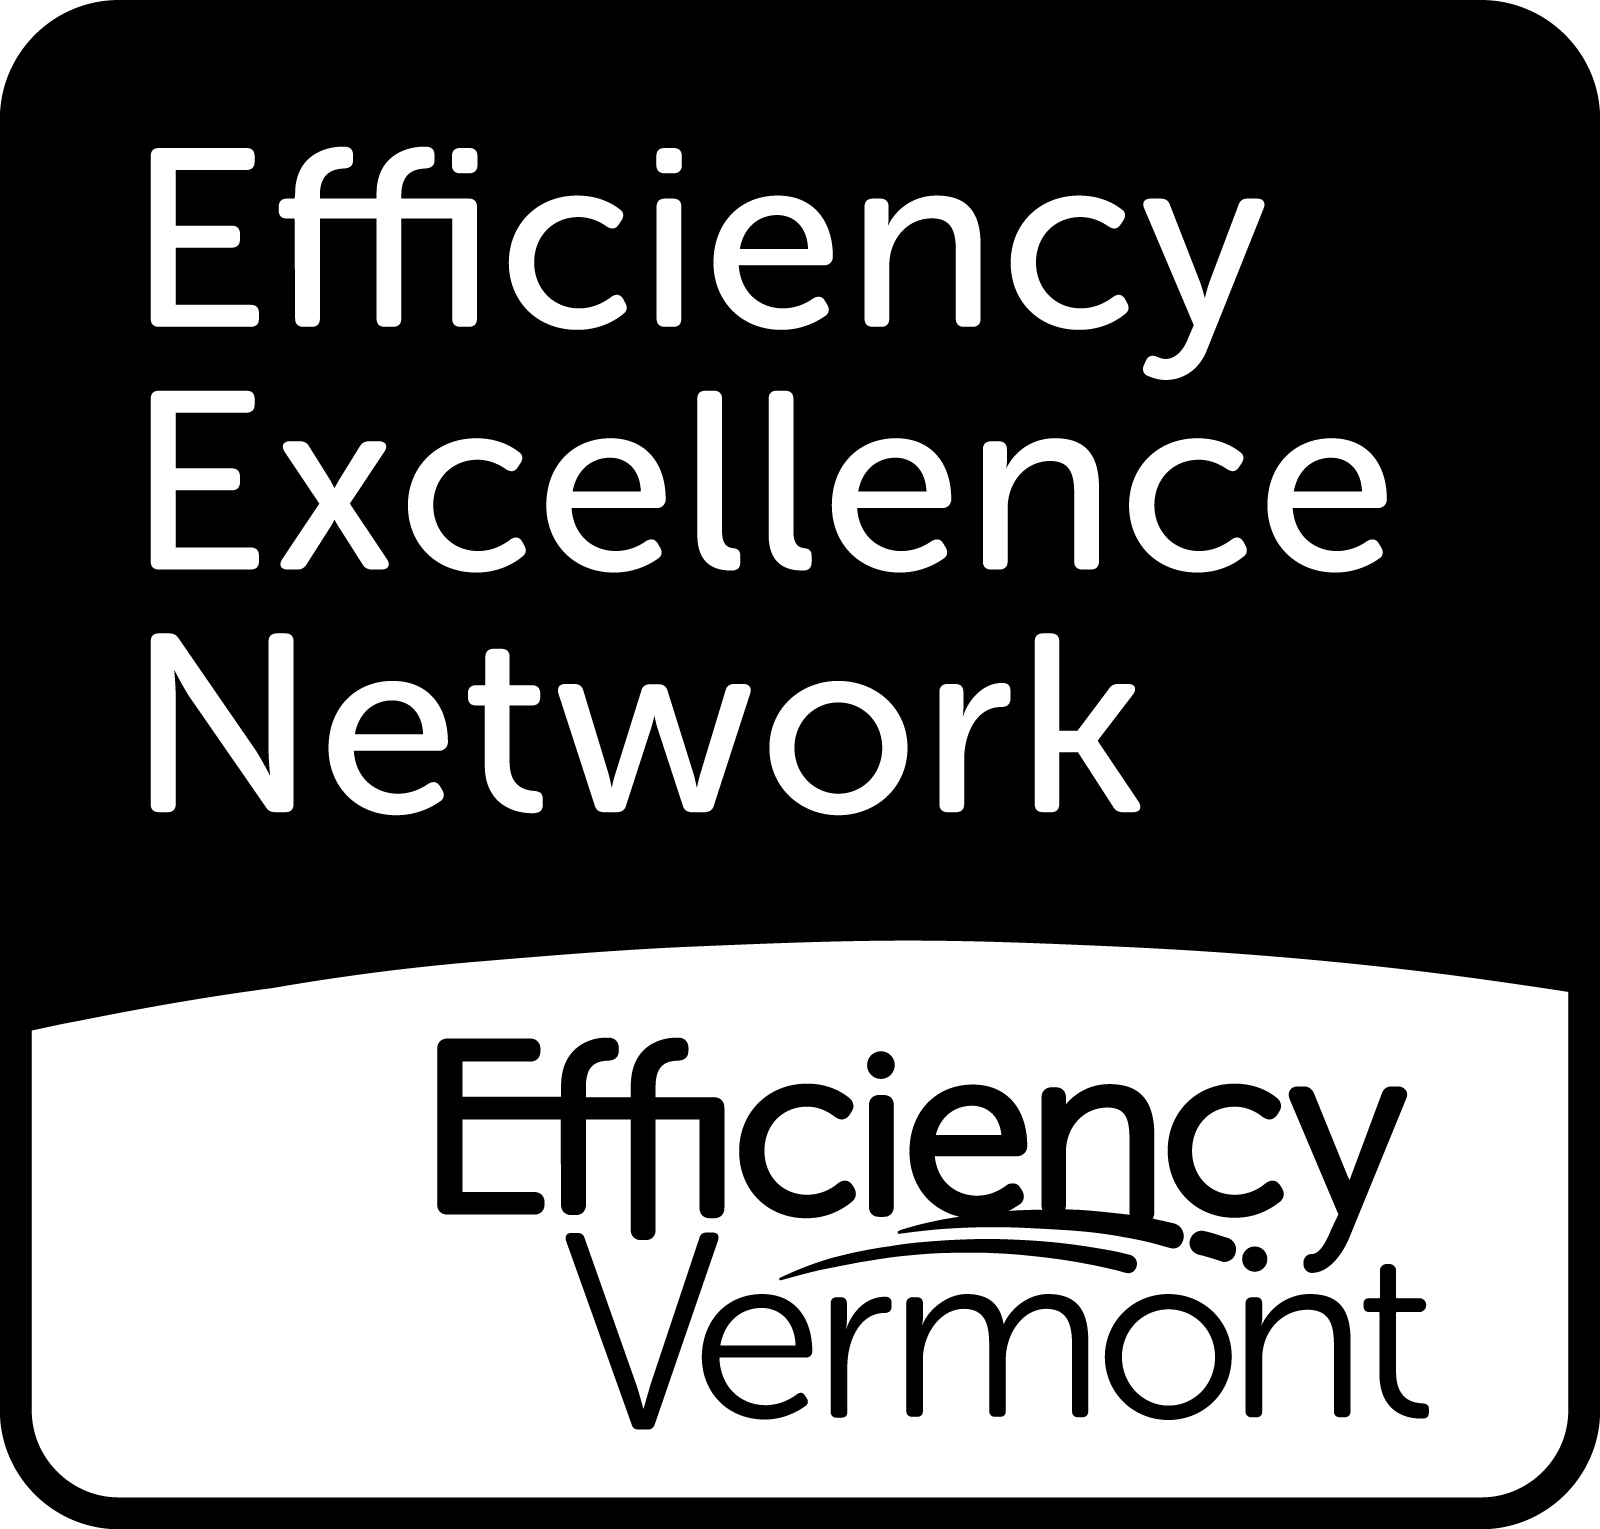 Efficiency Vermont & Efficiency Excellence Network Logo